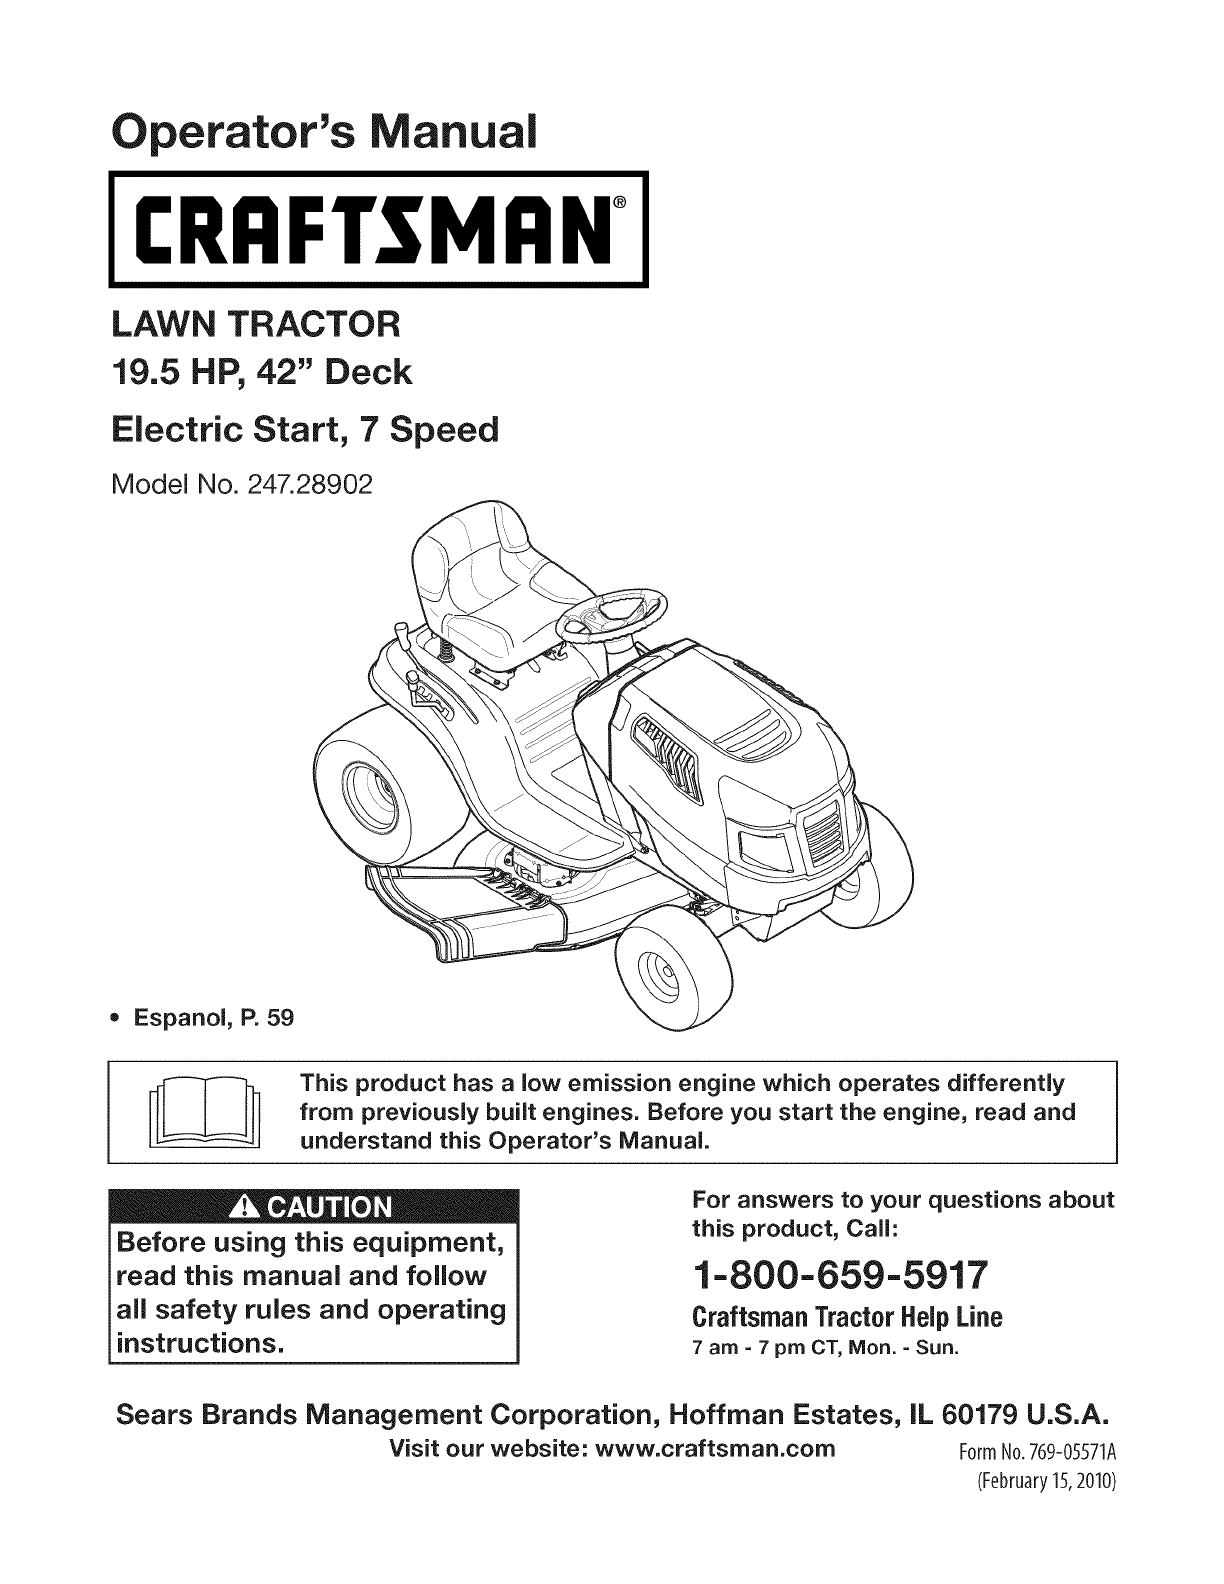 d5834c32 2c76 4b19 96a5 4440f3af6e8c bg1 craftsman lawn mower 247 28902 user guide manualsonline com Wright Stander Mower Wiring Diagram at edmiracle.co